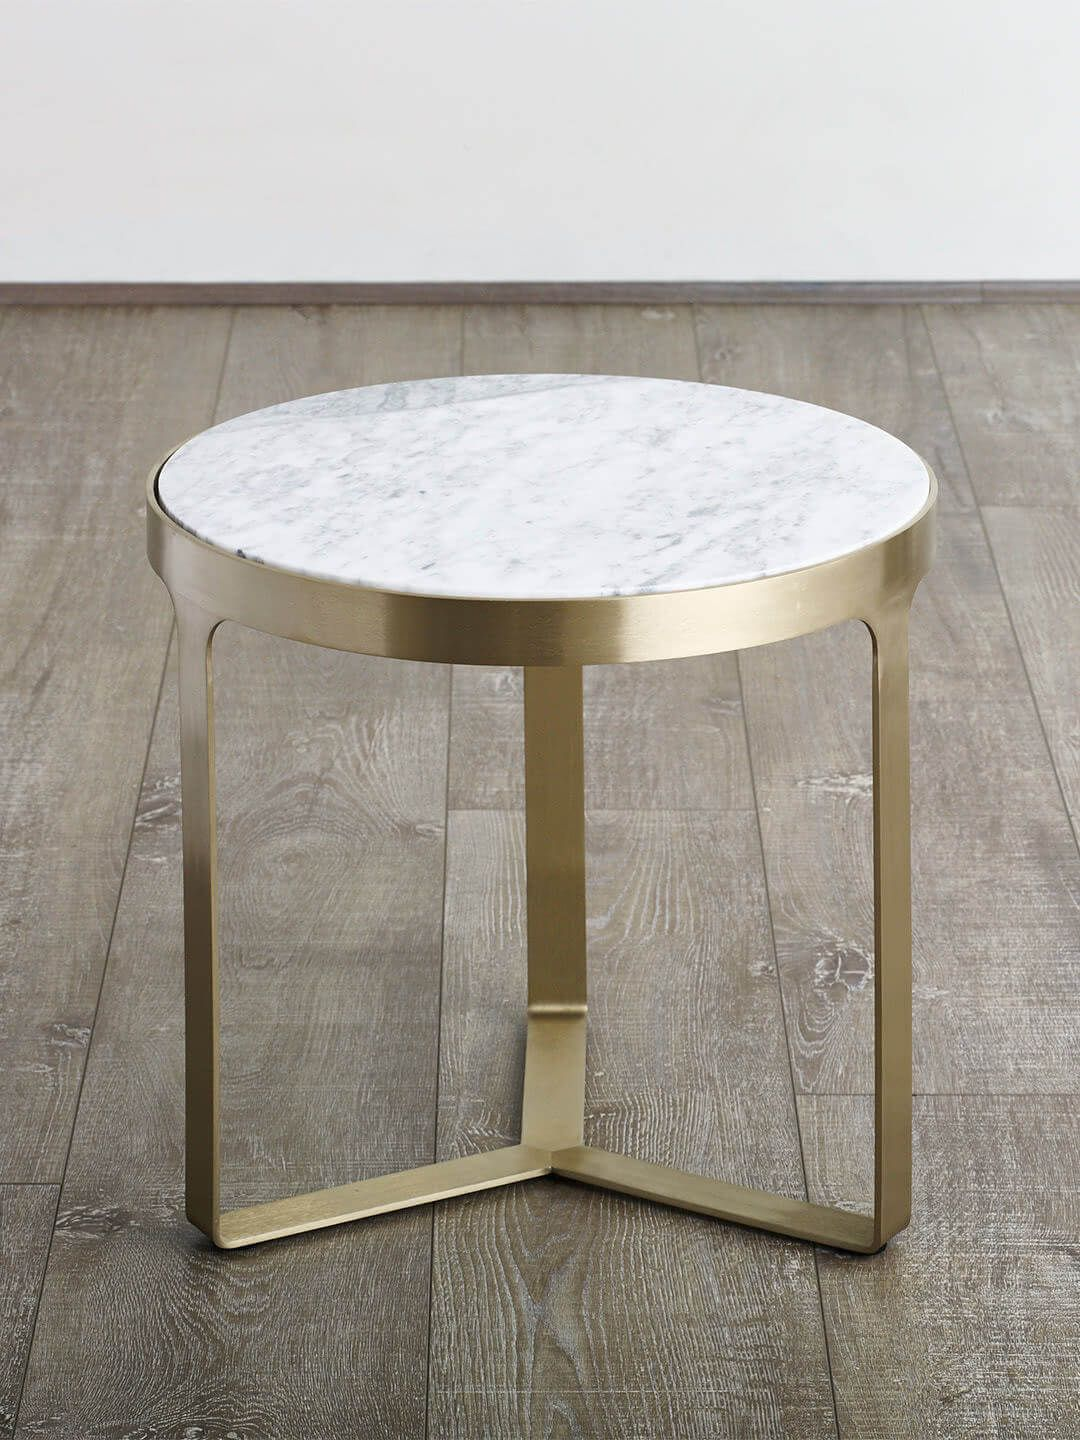 julius marble tables coffee nest side table end and round with brushed gold metal frame white top grey veins undertones one wall living room tempered glass ashley furniture